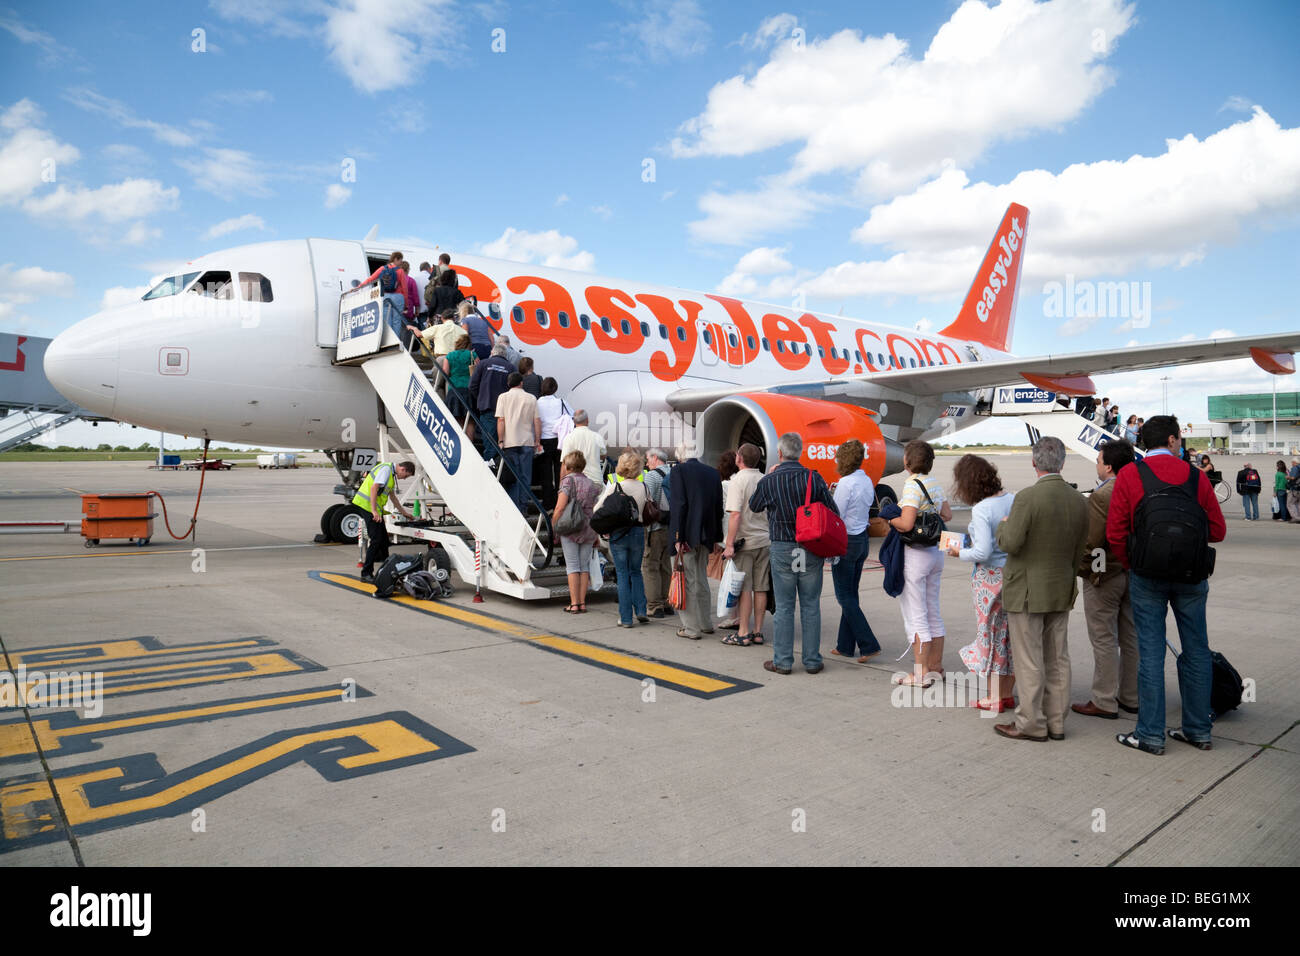 Passengers boarding an Easyjet plane at Stansted airport, UK Stock Photo